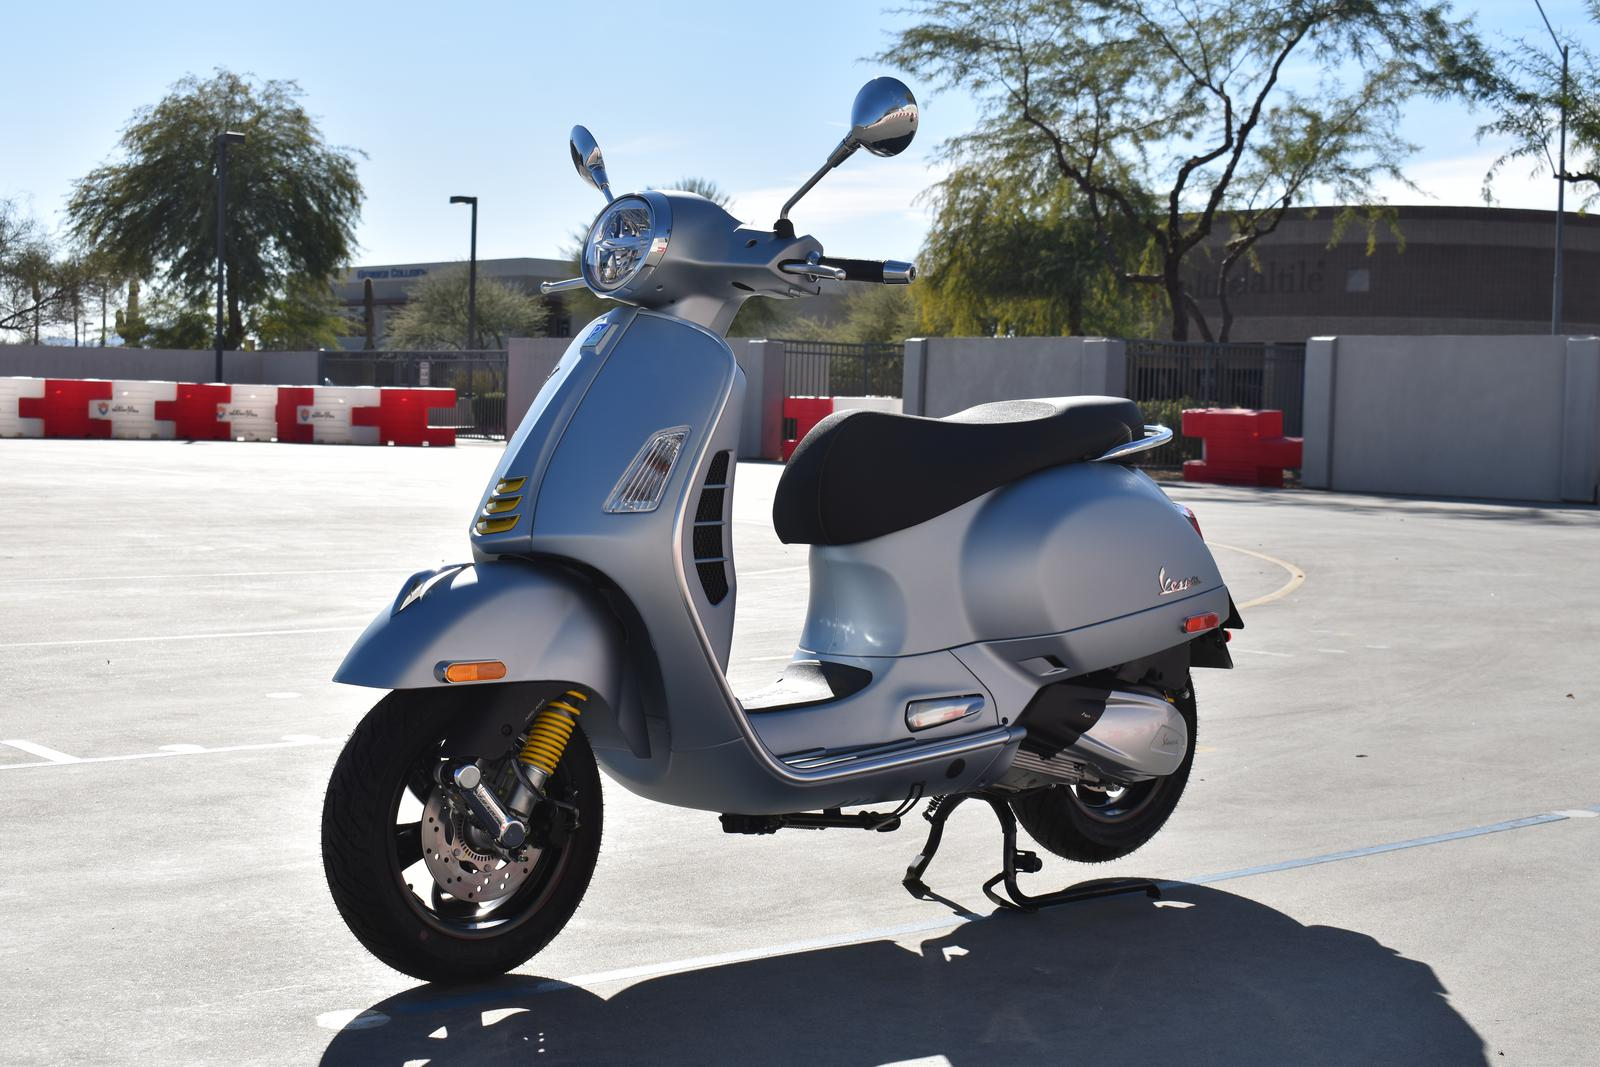 2021 Vespa Gts Supertech 300 Hpe For Sale In Scottsdale Az Go Az Motorcycles In Scottsdale Scottsdale Az 480 609 1800